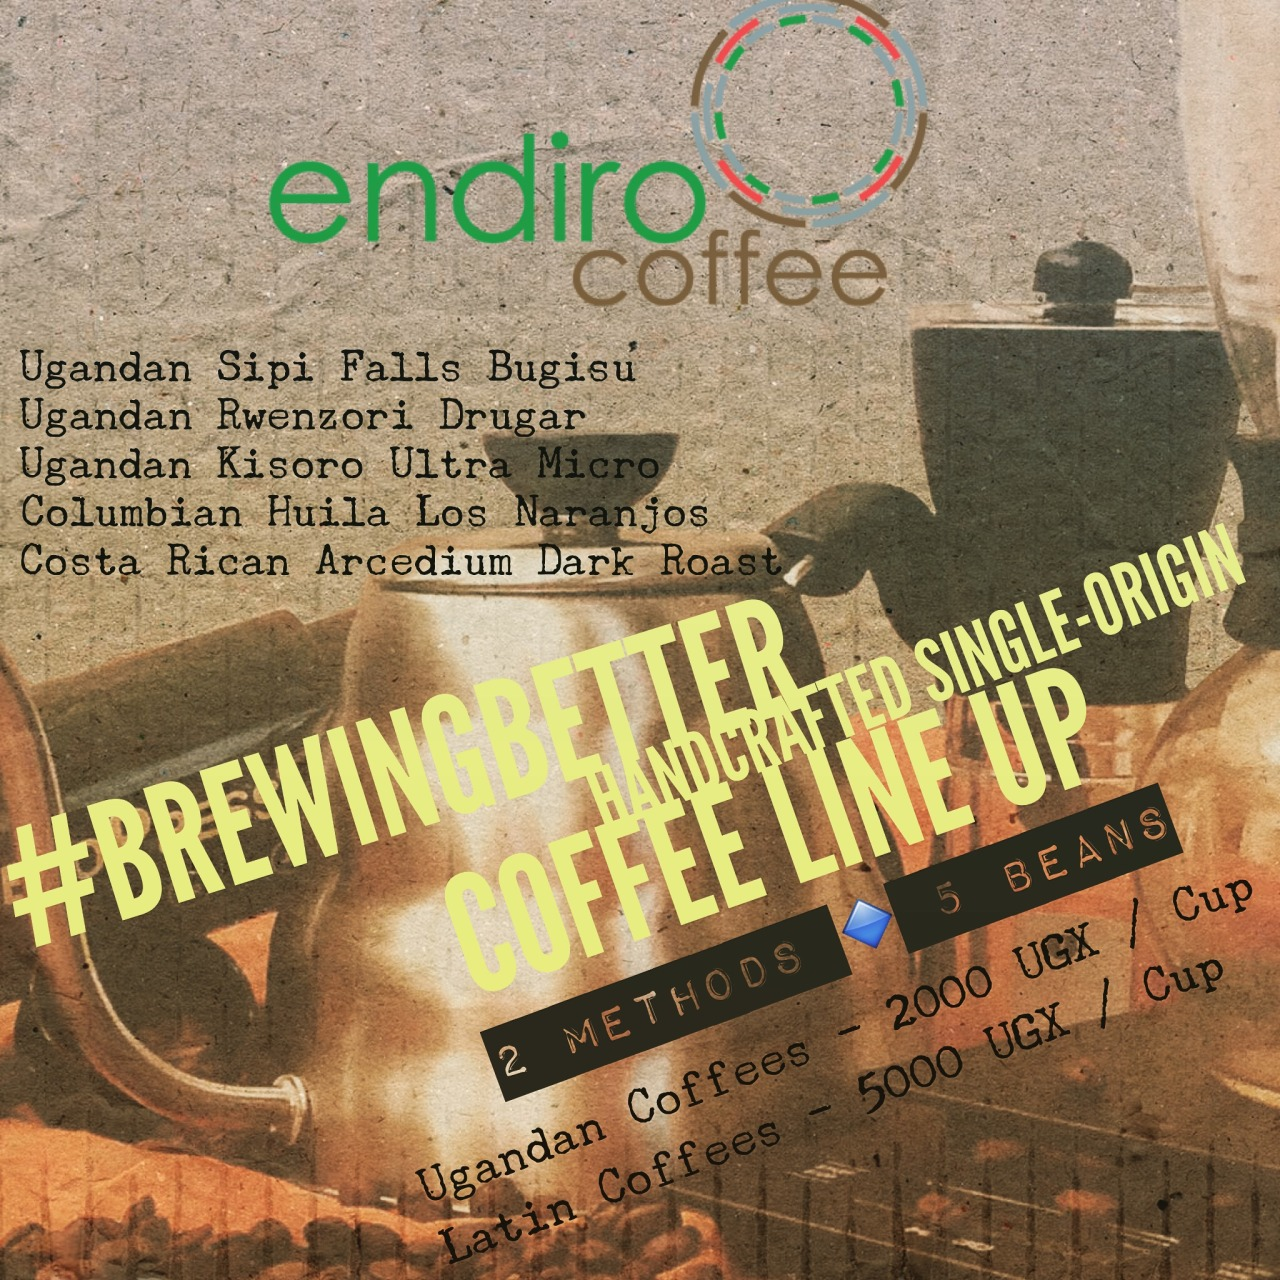 """ANNOUNCING:  #Brewingbetter  Coffee Lineup for Saturday at Endiro Kisimenti (Kololo, Kampala).  [MORE DETAILS - http://www.endirocoffee.com/ ]  5 Single Origins, Hand brewed via  #aeropress  or #hario   #woodneck  … Event-only price of 2000 UGX for  #Ugandan  beans and 5000 UGX for Latin American. It is our honor to introduce you to the variety, complexity, and deliciousness of the finest Ugandan coffees. All purchased directly from small hold farmers by us and roasted this week. A big, big, big shout out and thanks to our feature  #mzungu roasters  @rivercityroasters  in Chicago, USA whose work you'll sample with our Columbian coffee. This is going to be a historic day for coffee in our country! Come and sample them all and tell us how you are working to """"brew a better world""""."""